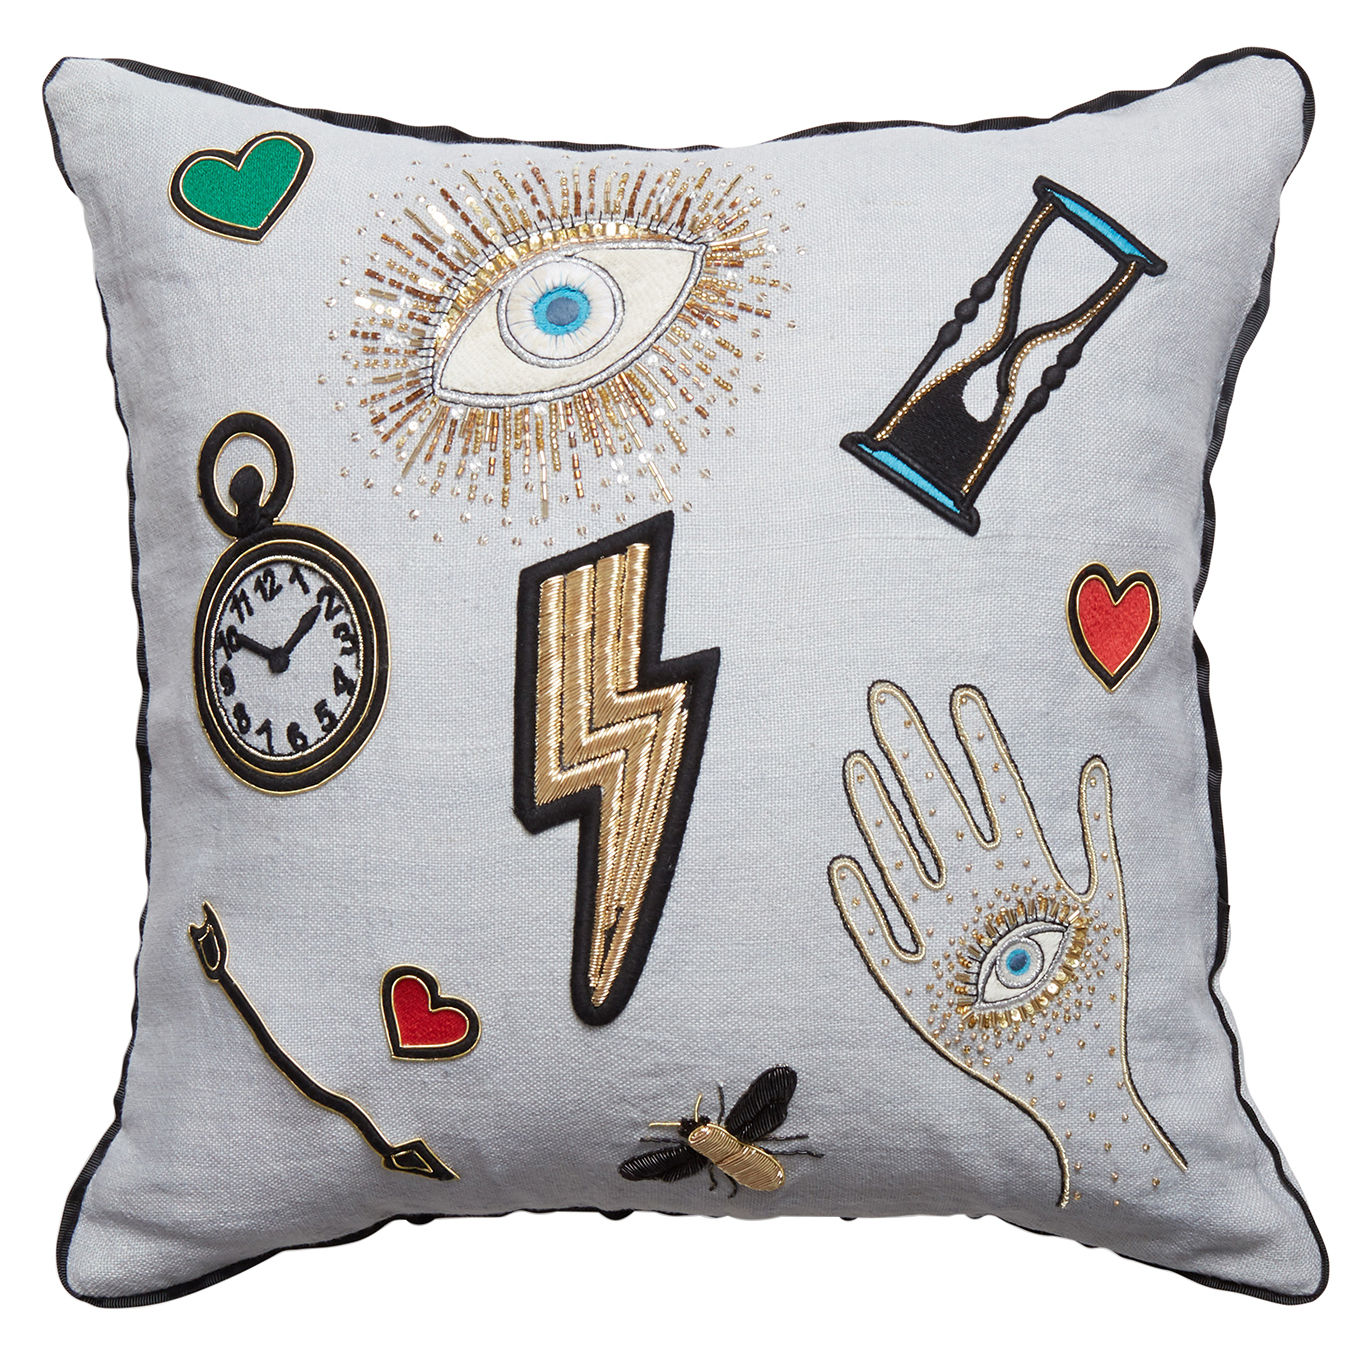 Decoration - Cushions & Poufs - Bijoux Scatter Cushion - / 46 x 46 cm - Linen & hand-embroidered beads by Jonathan Adler - Scatter / Multicoloured -  Duvet,  Plumes, Linen, Perles